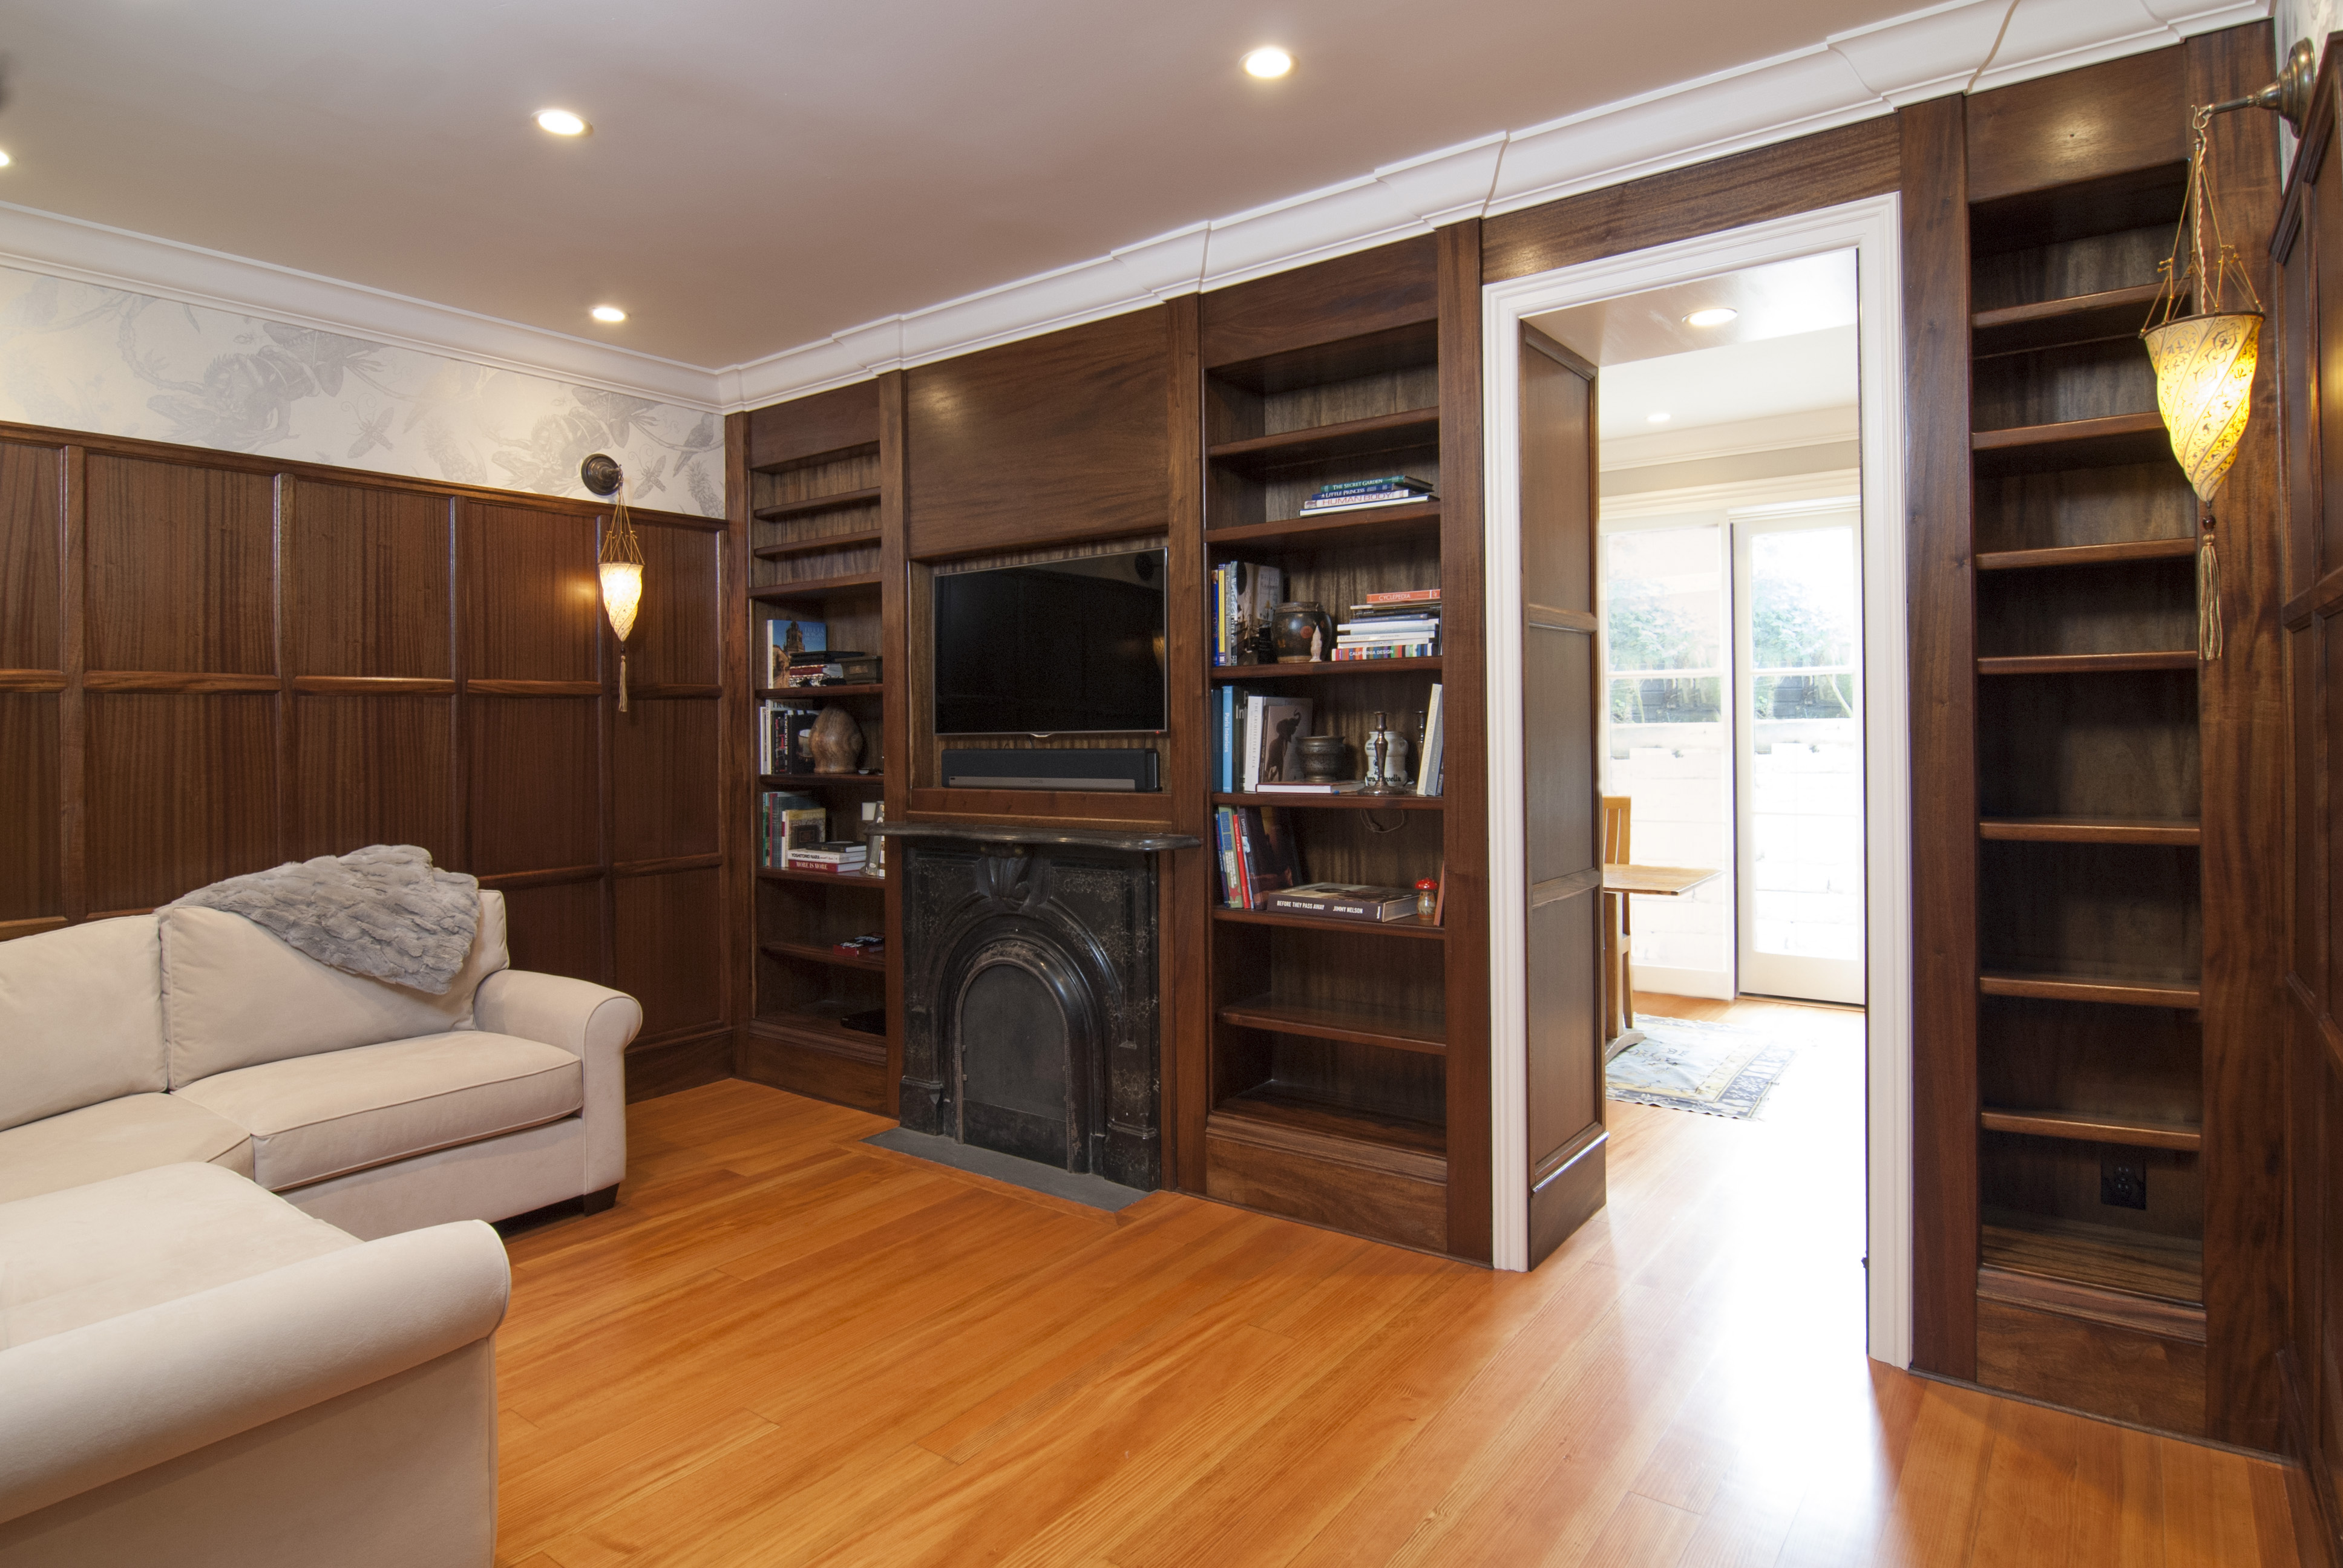 Beautiful Office Built-Ins with Open Shelves and a Marble Fire Place